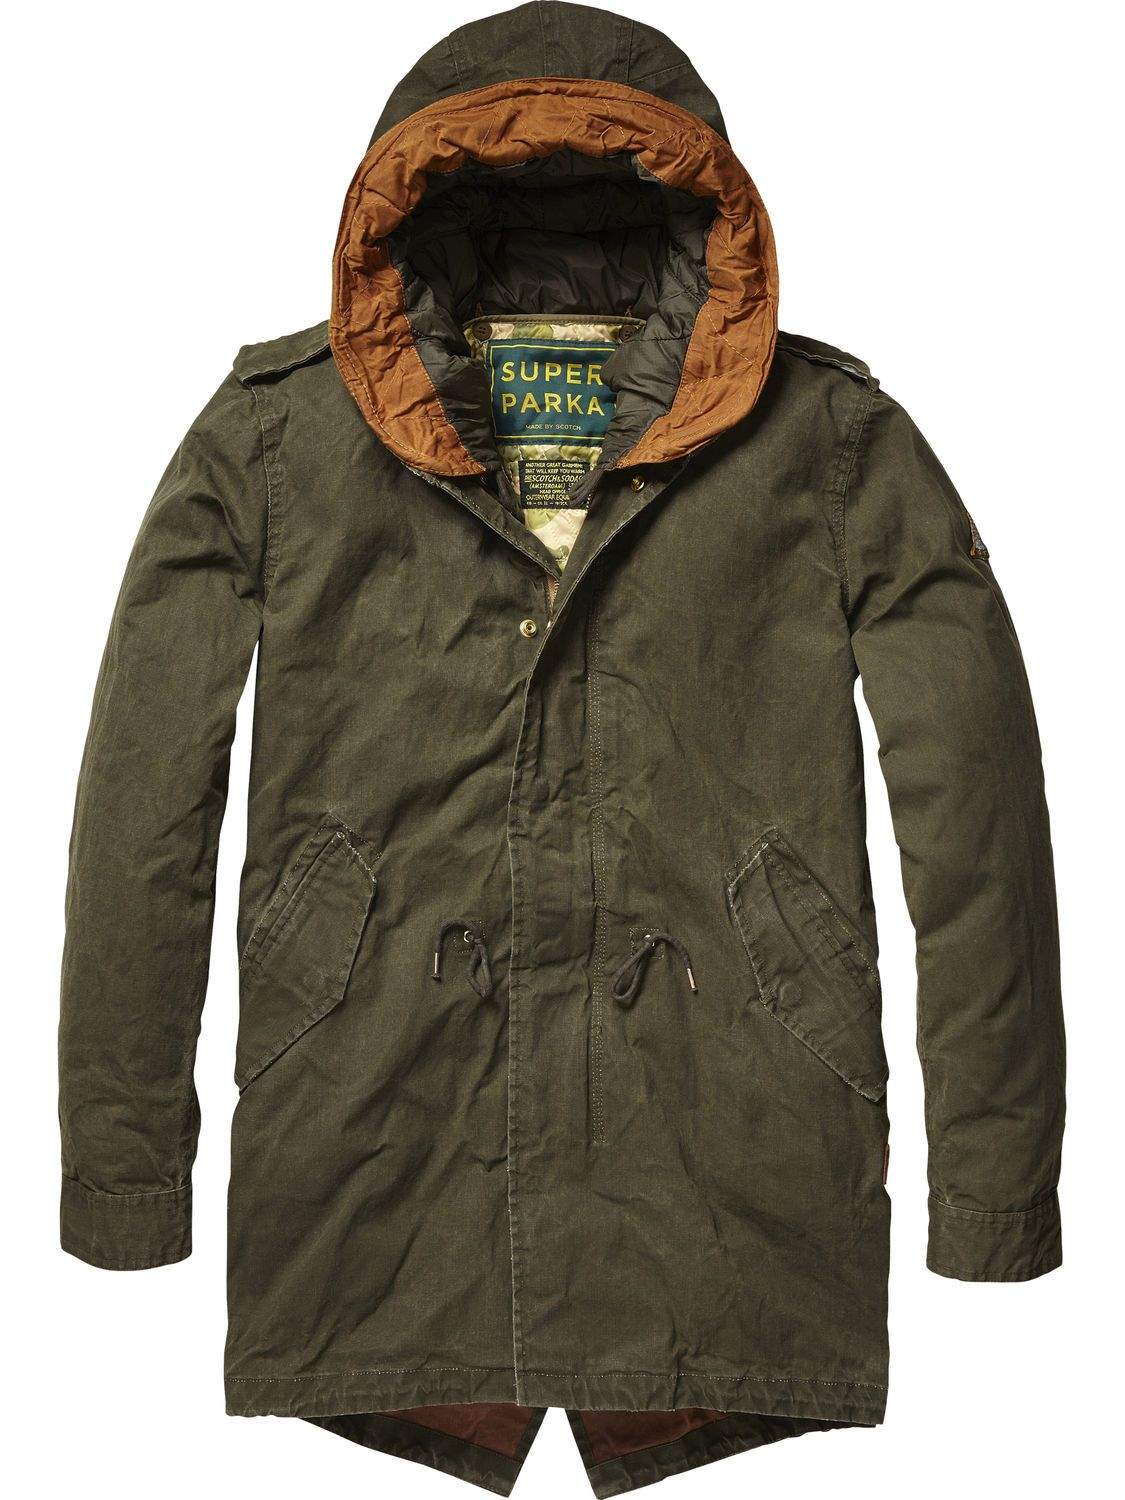 Classic Cotton Parka | Jackets | Men's Clothing at Scotch & Soda